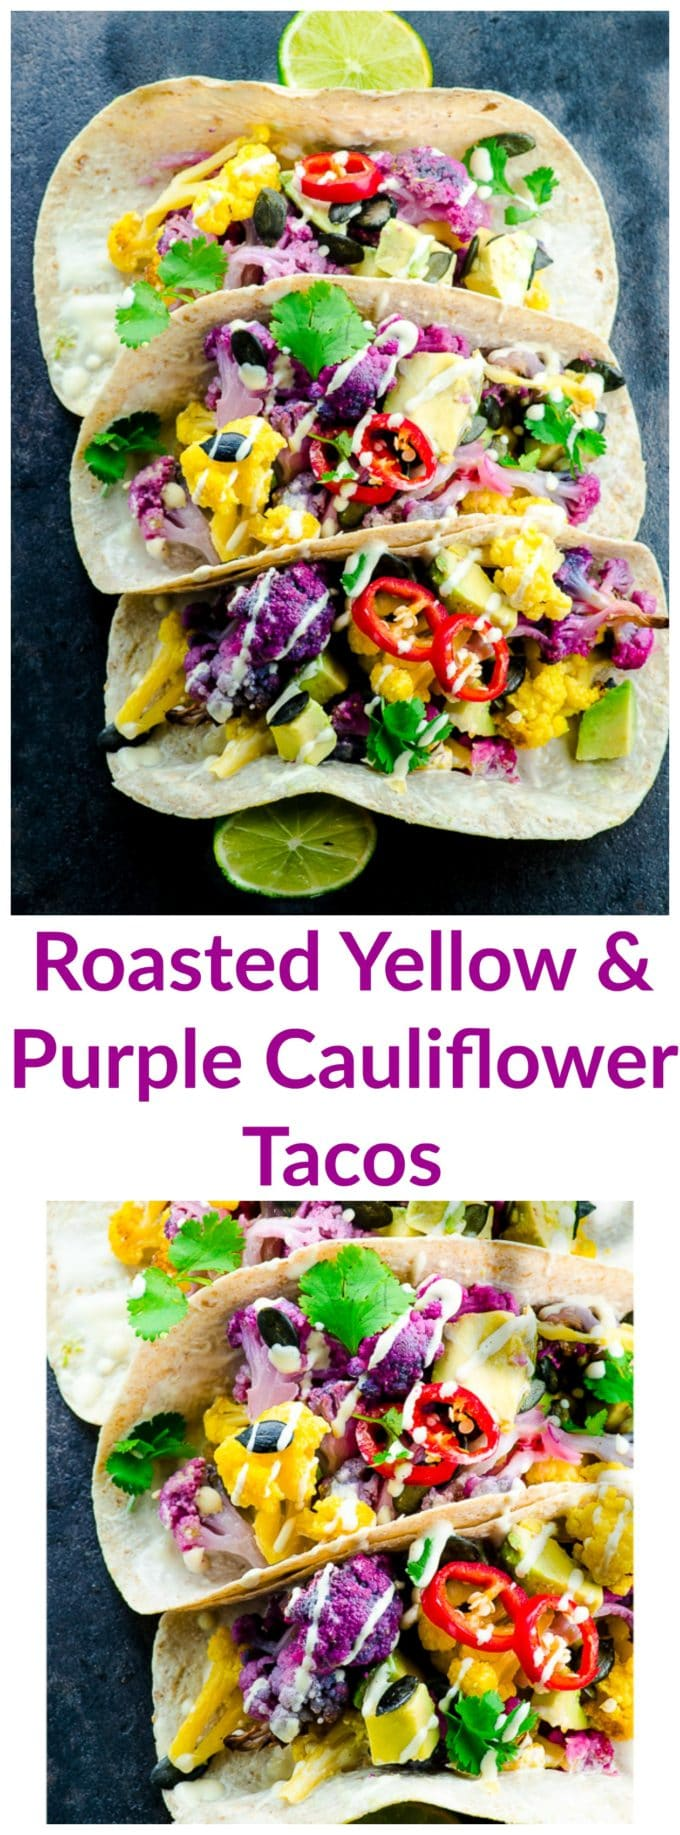 These healthy Roasted Yellow and Purple Cauliflower Tacos, topped with cashew cream are good for you and absolutely stunning. Like a bright rainbow on a plate!